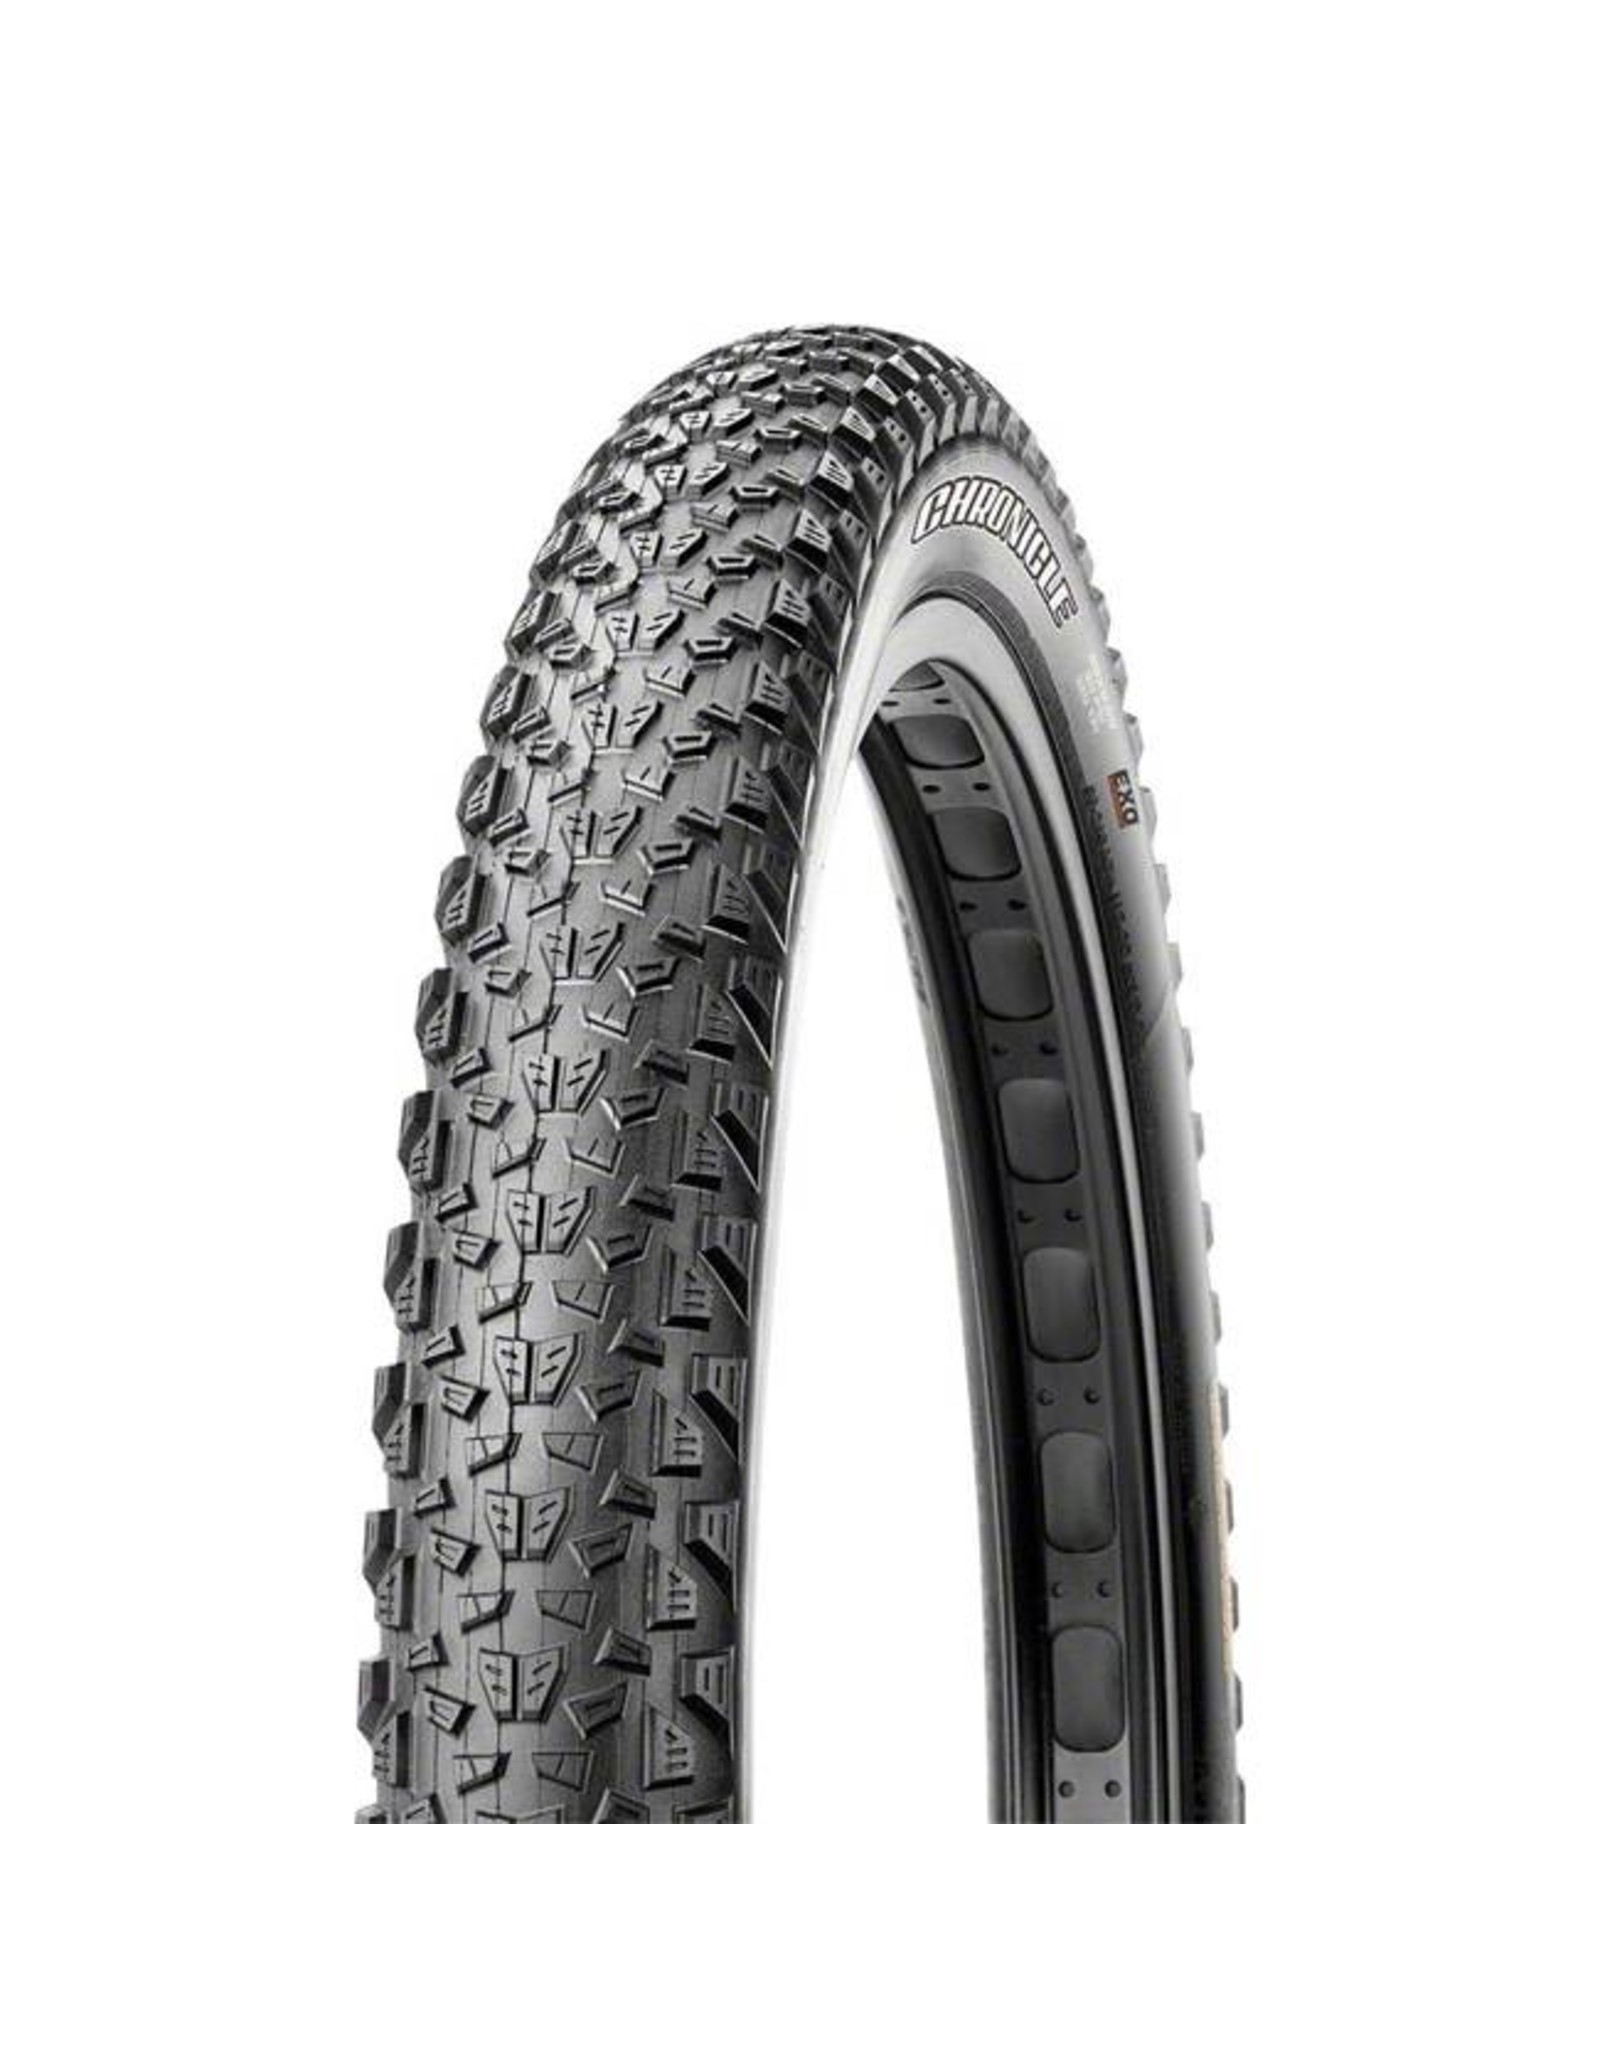 """Maxxis Maxxis Chronicle Tire: 27.5 x 3.00"""", Folding, 60tpi, Dual Compound, Black"""